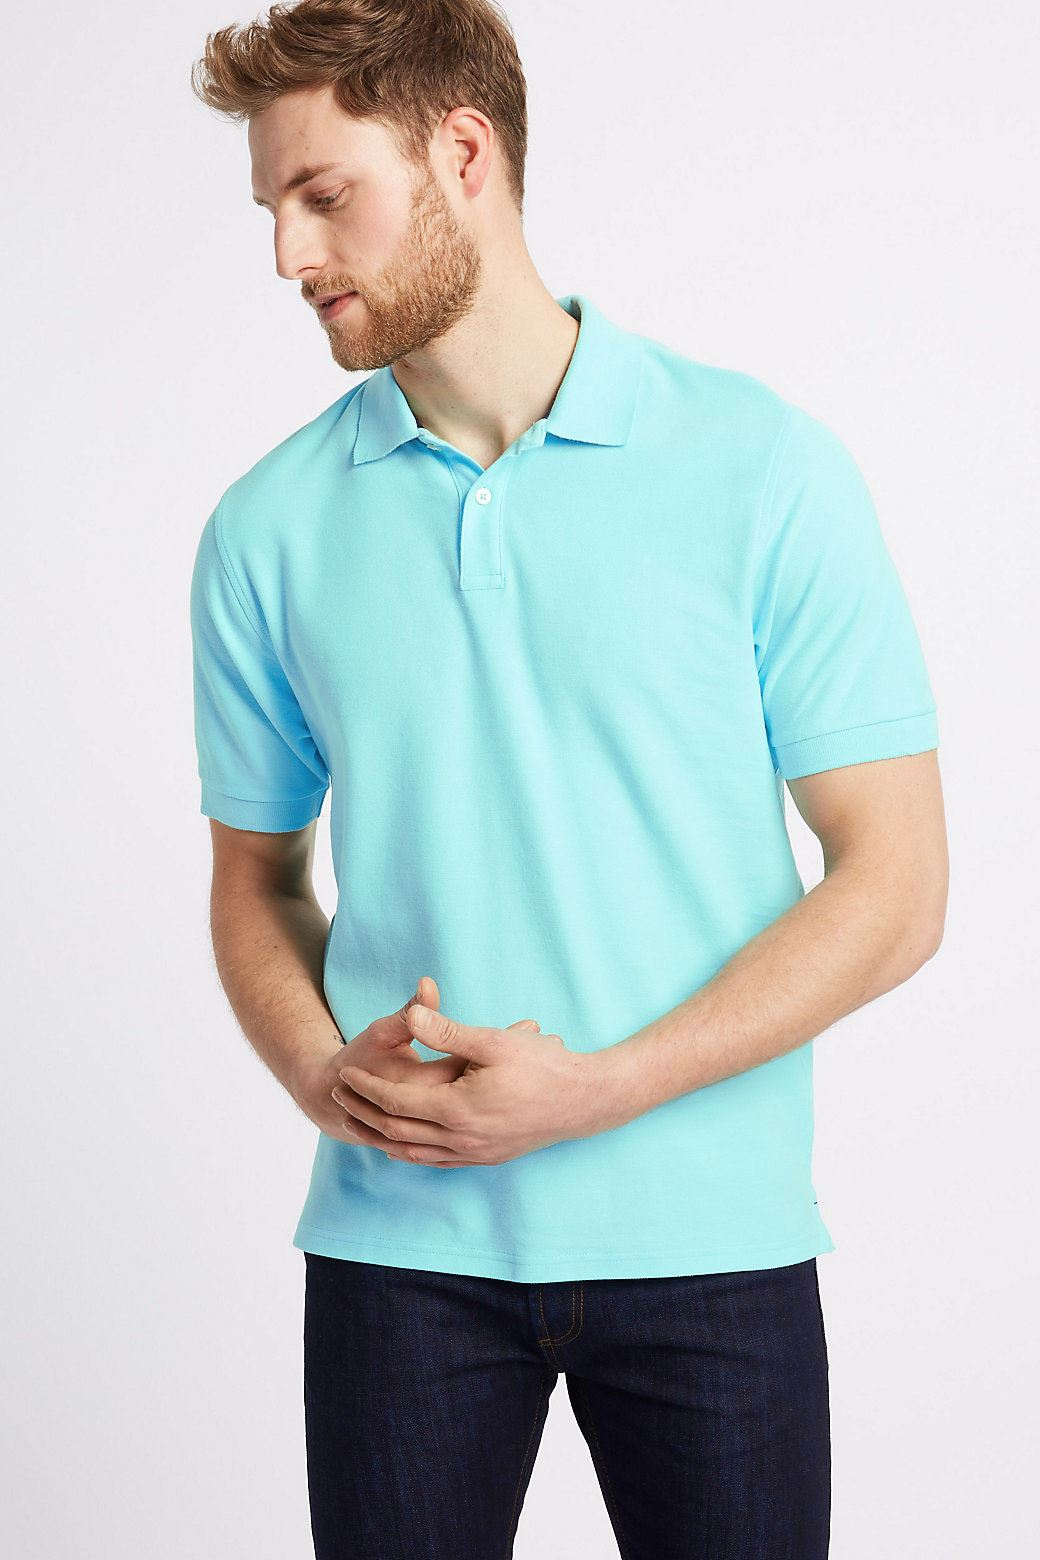 Ex-Marks-and-Spencer-Mens-Cotton-Pique-Polo-Shirt-NEW-Sizes-S-3XL thumbnail 28